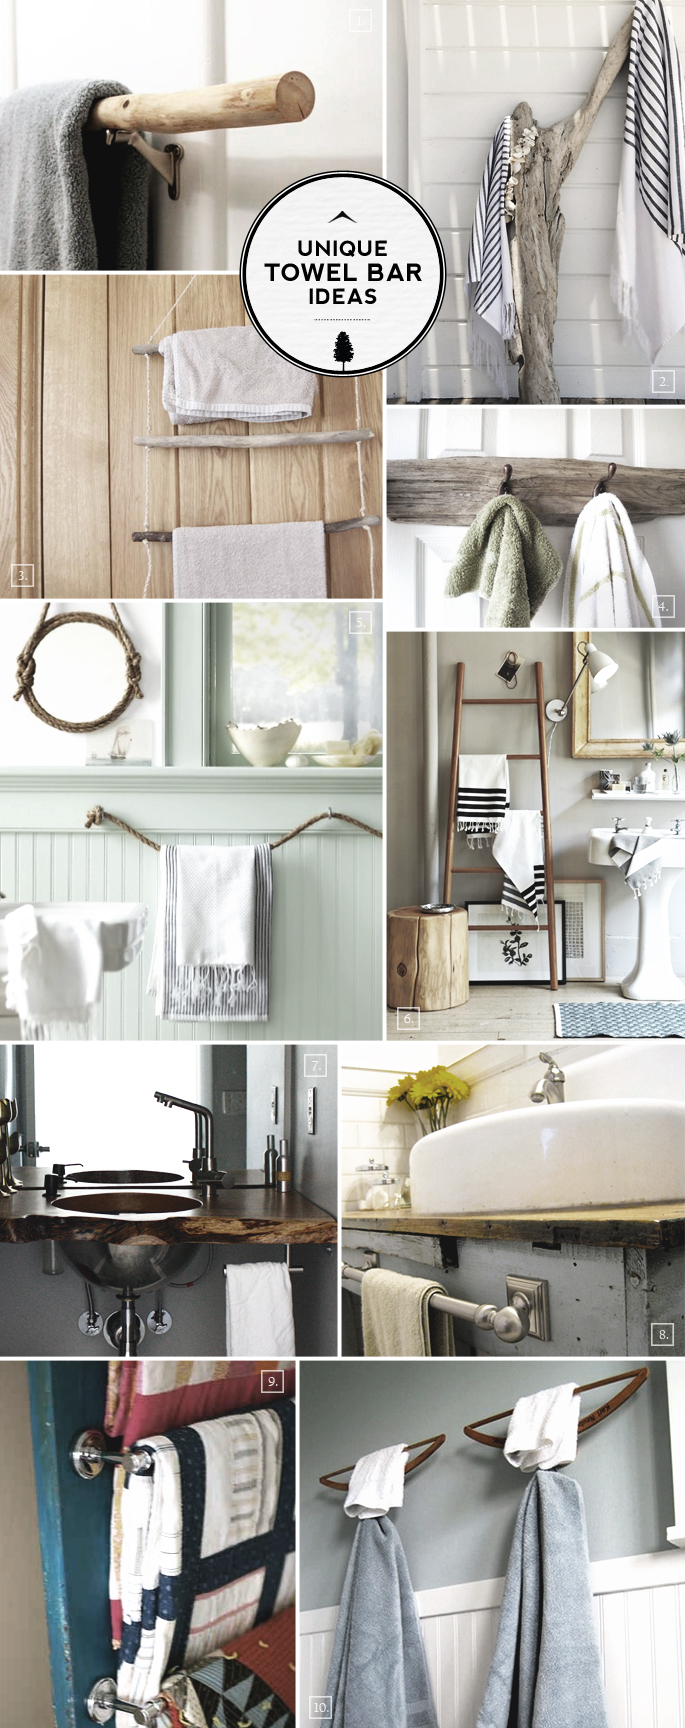 Unique Ideas for Bathroom Towel Bars and Racks | Home Tree Atlas